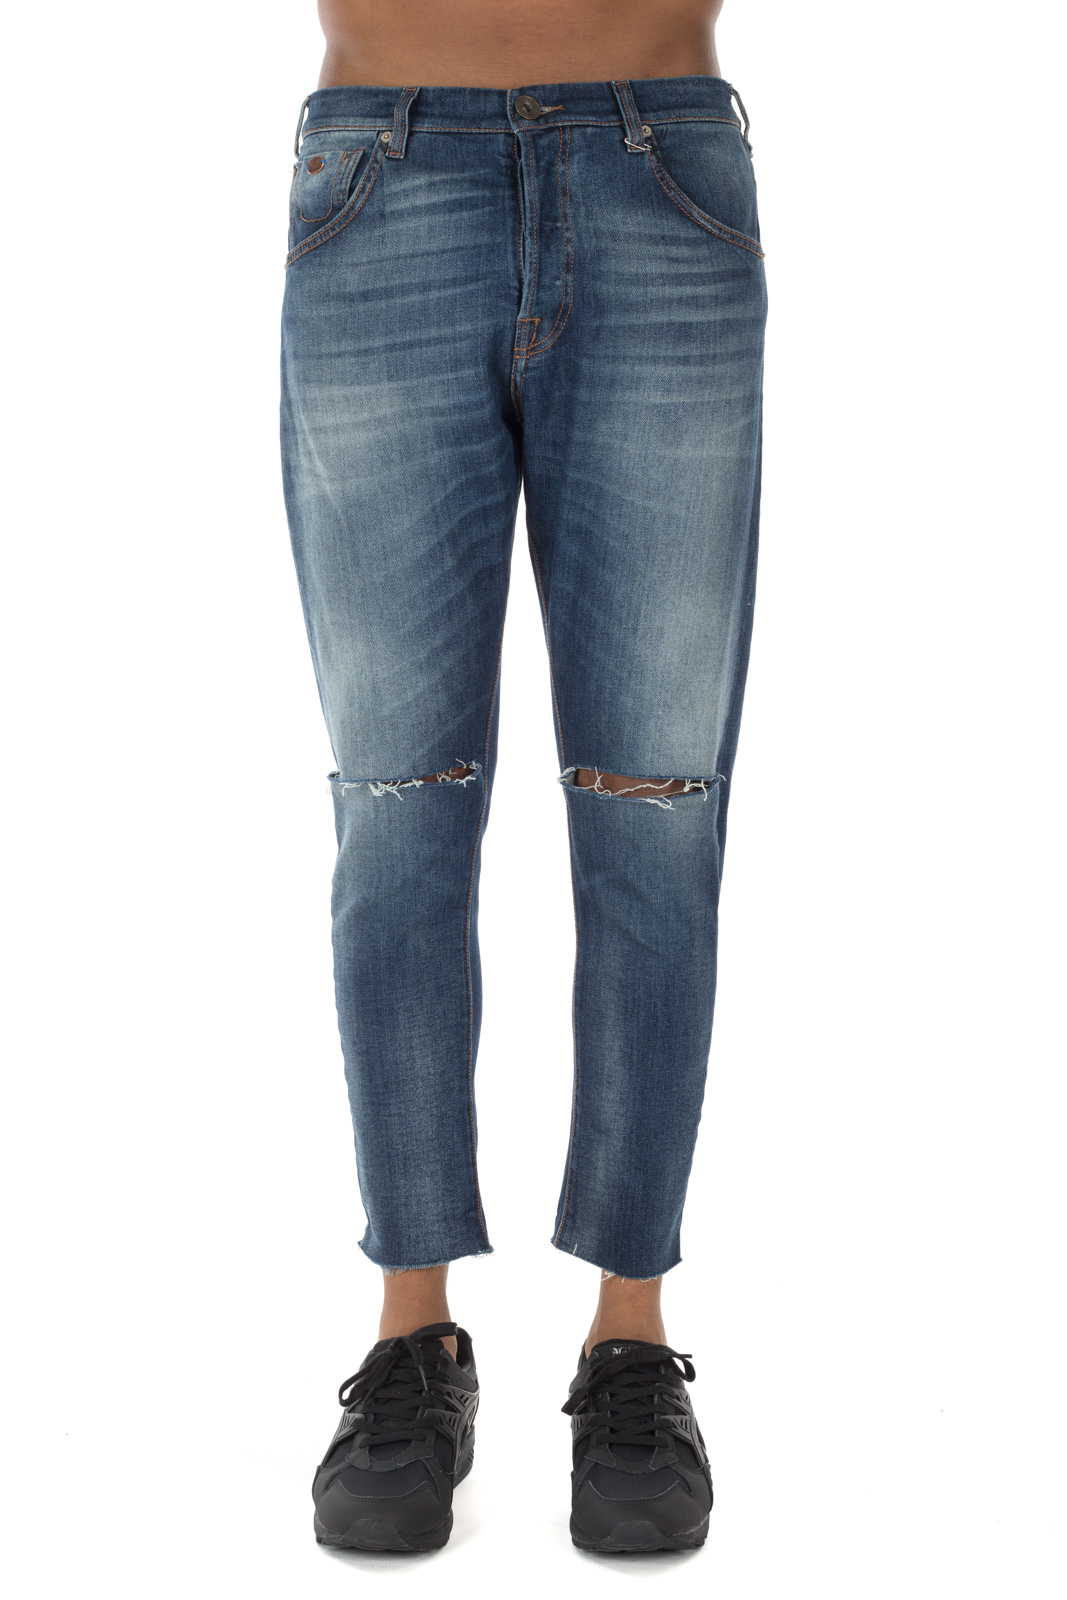 Berna - Skinny Blue Jeans with Cuts